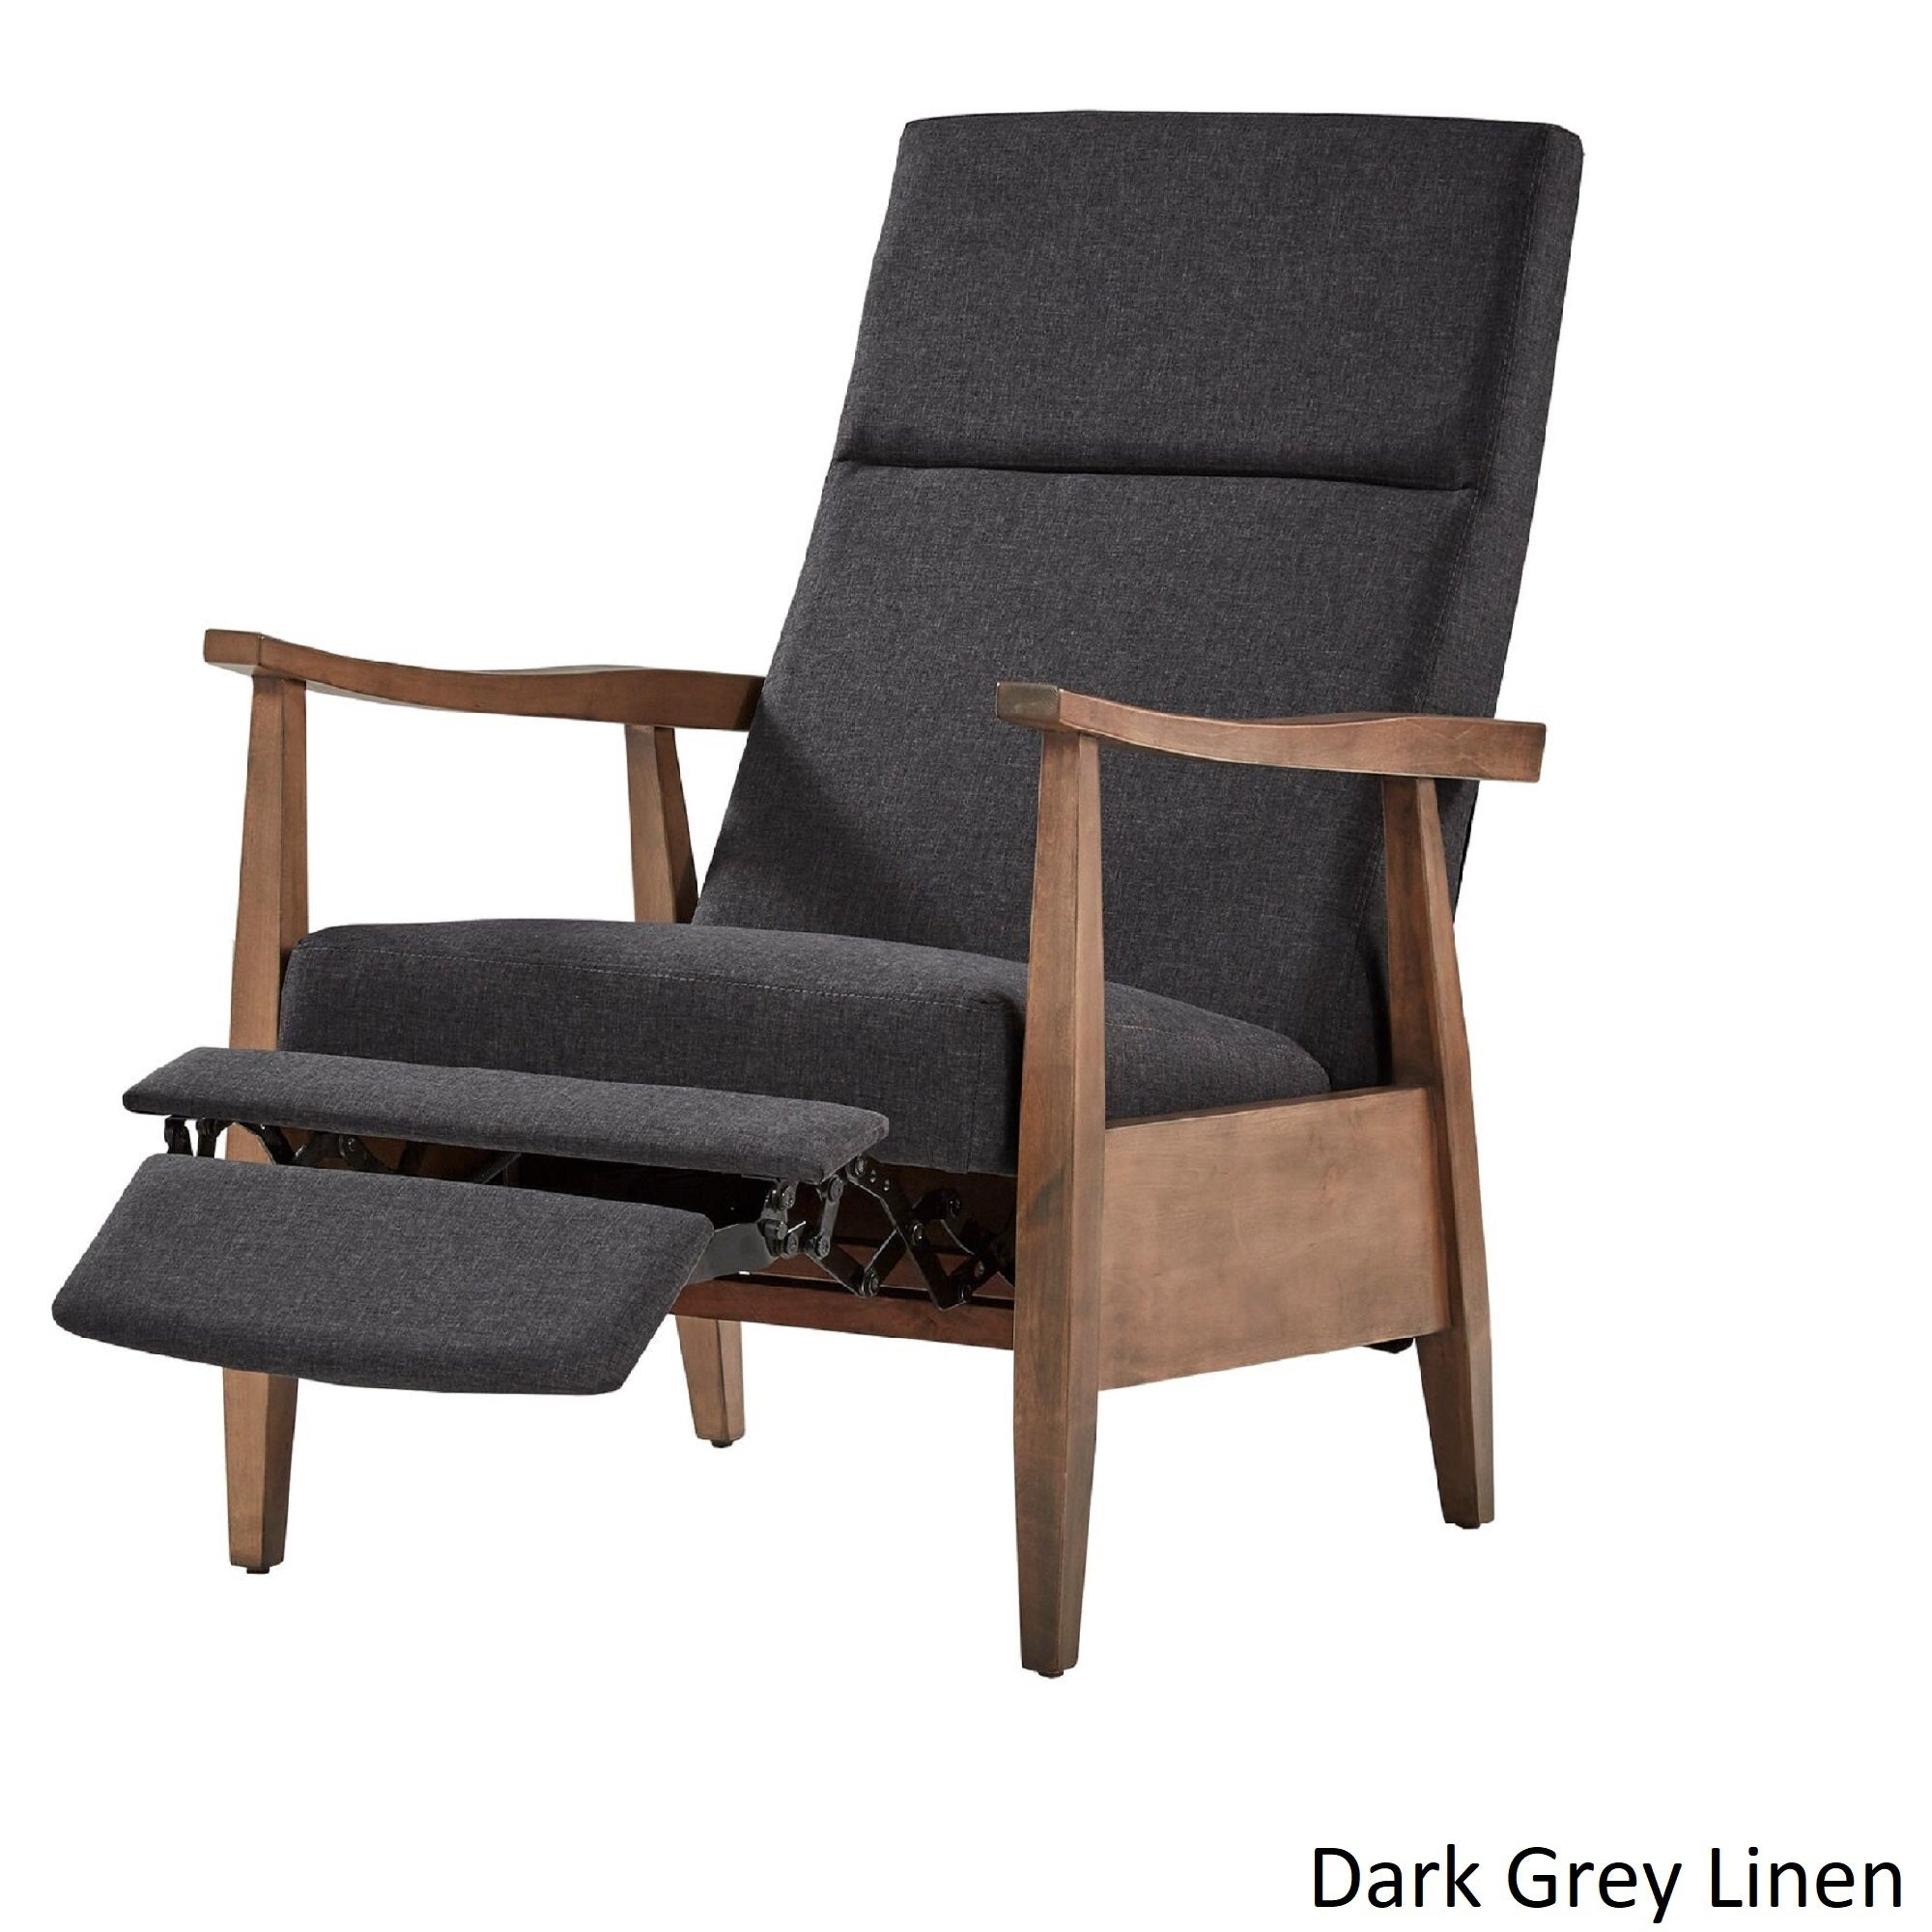 Brayden Mid-Century Wood Arm Recliner by iNSPIRE Q Modern - Free Shipping  Today - Overstock.com - 23967838